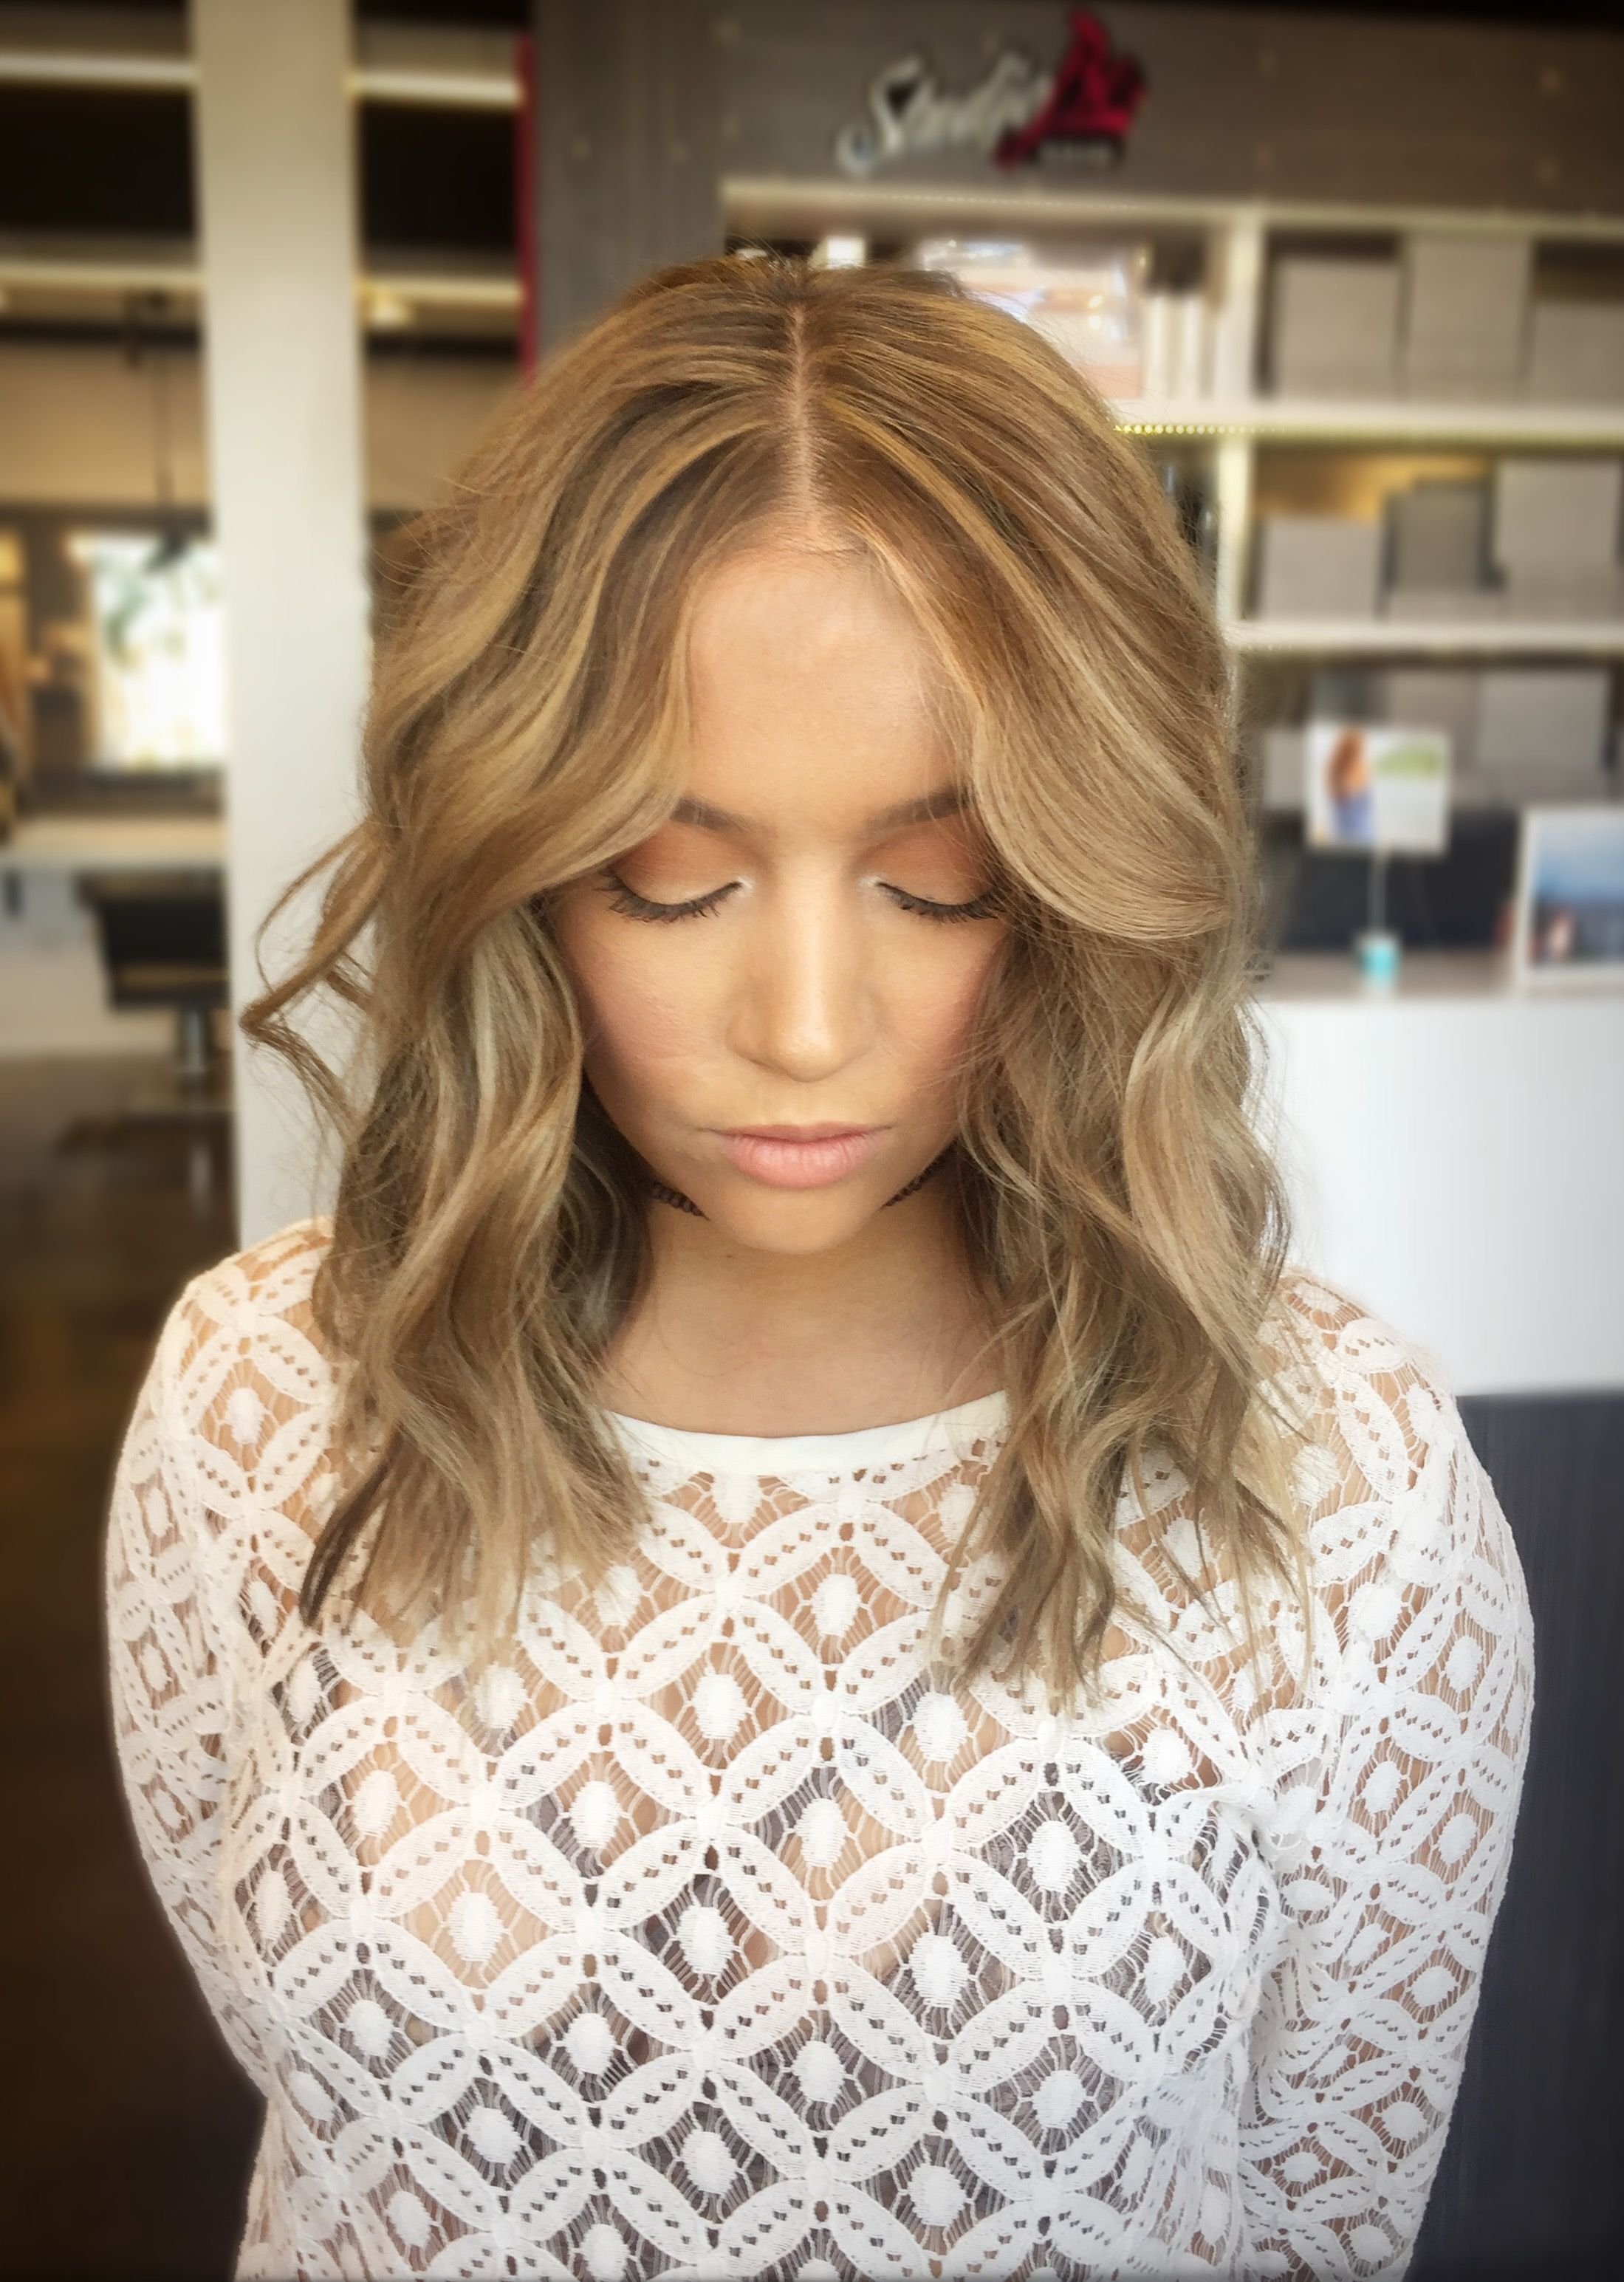 Fierce new look for this babe we cut off